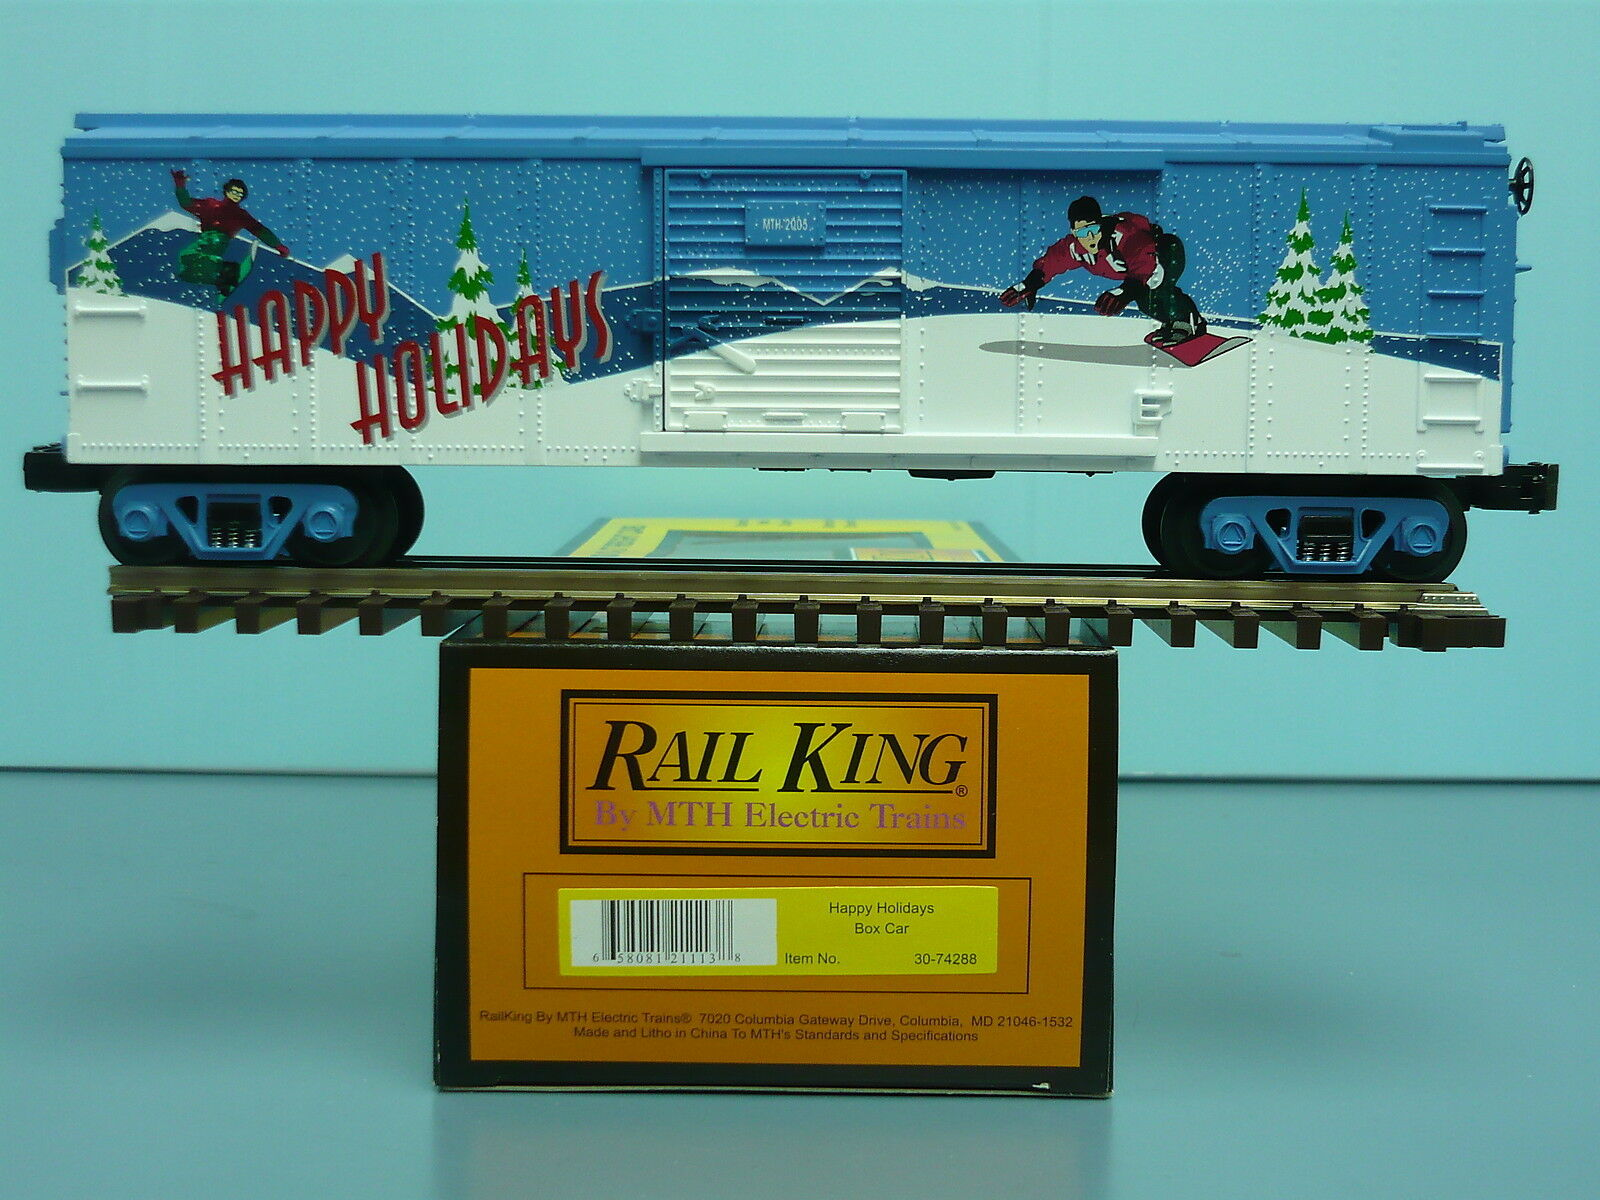 MTH Railking Box Car Happy Holidays 2005 O O27 Christmas 40' Boxcar 30-74288